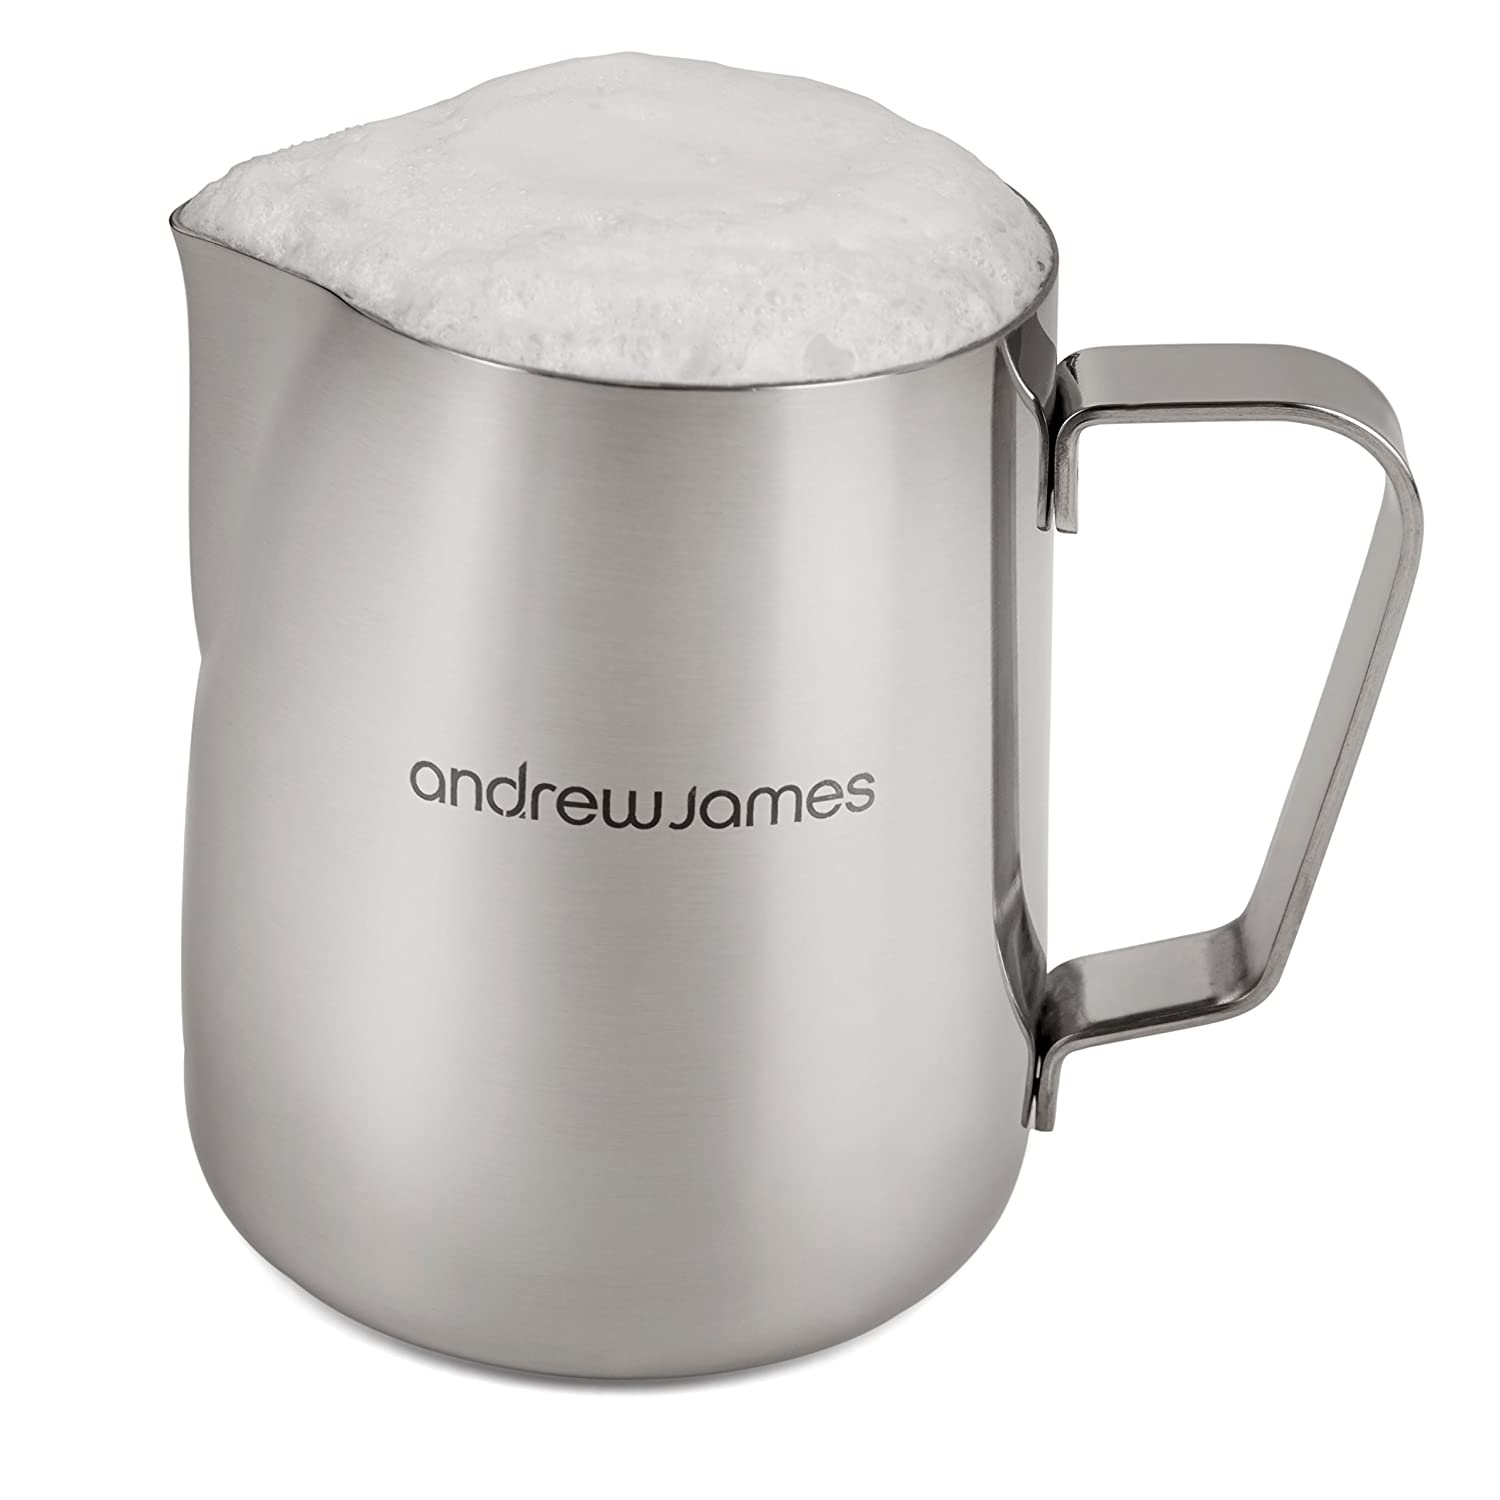 andrew james l ml stainless steel coffee frothing milk jug  - andrew james l ml stainless steel coffee frothing milk jug forlattes amazoncouk kitchen  home